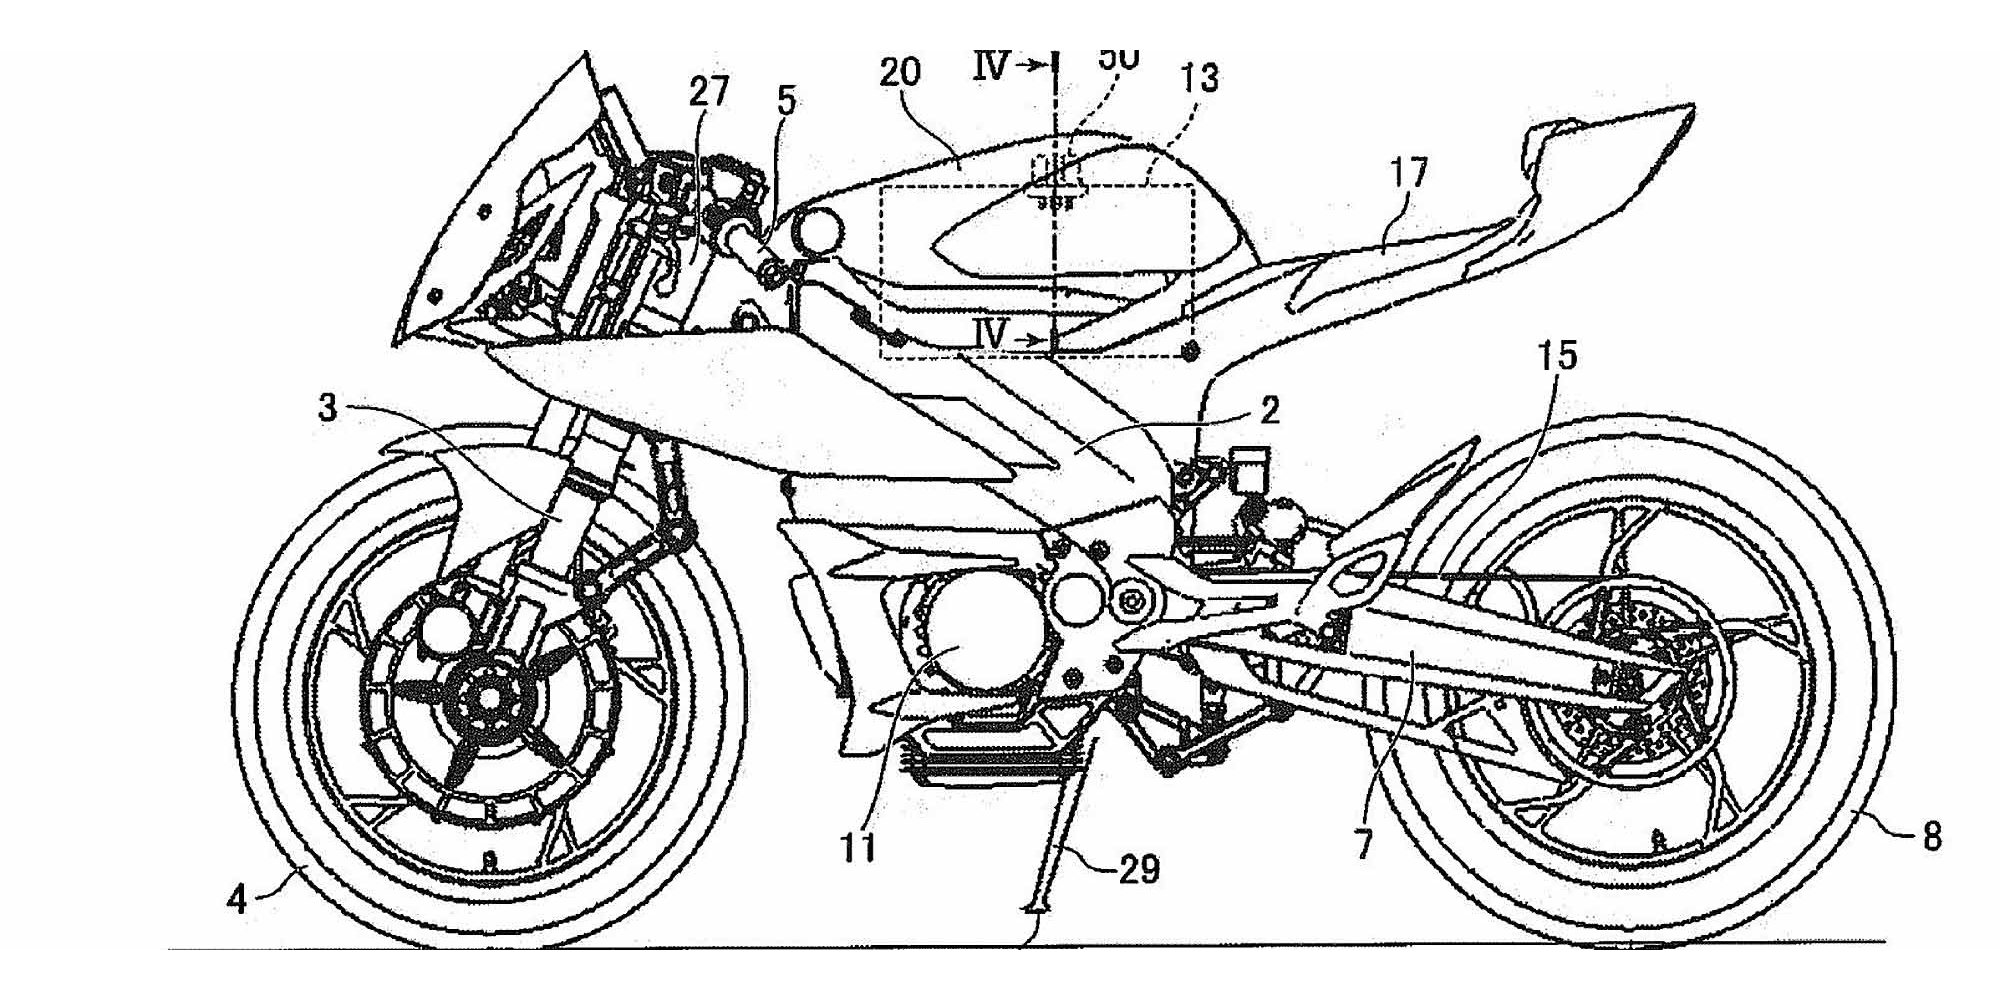 New Yamaha electric motorcycle patents show electric R1